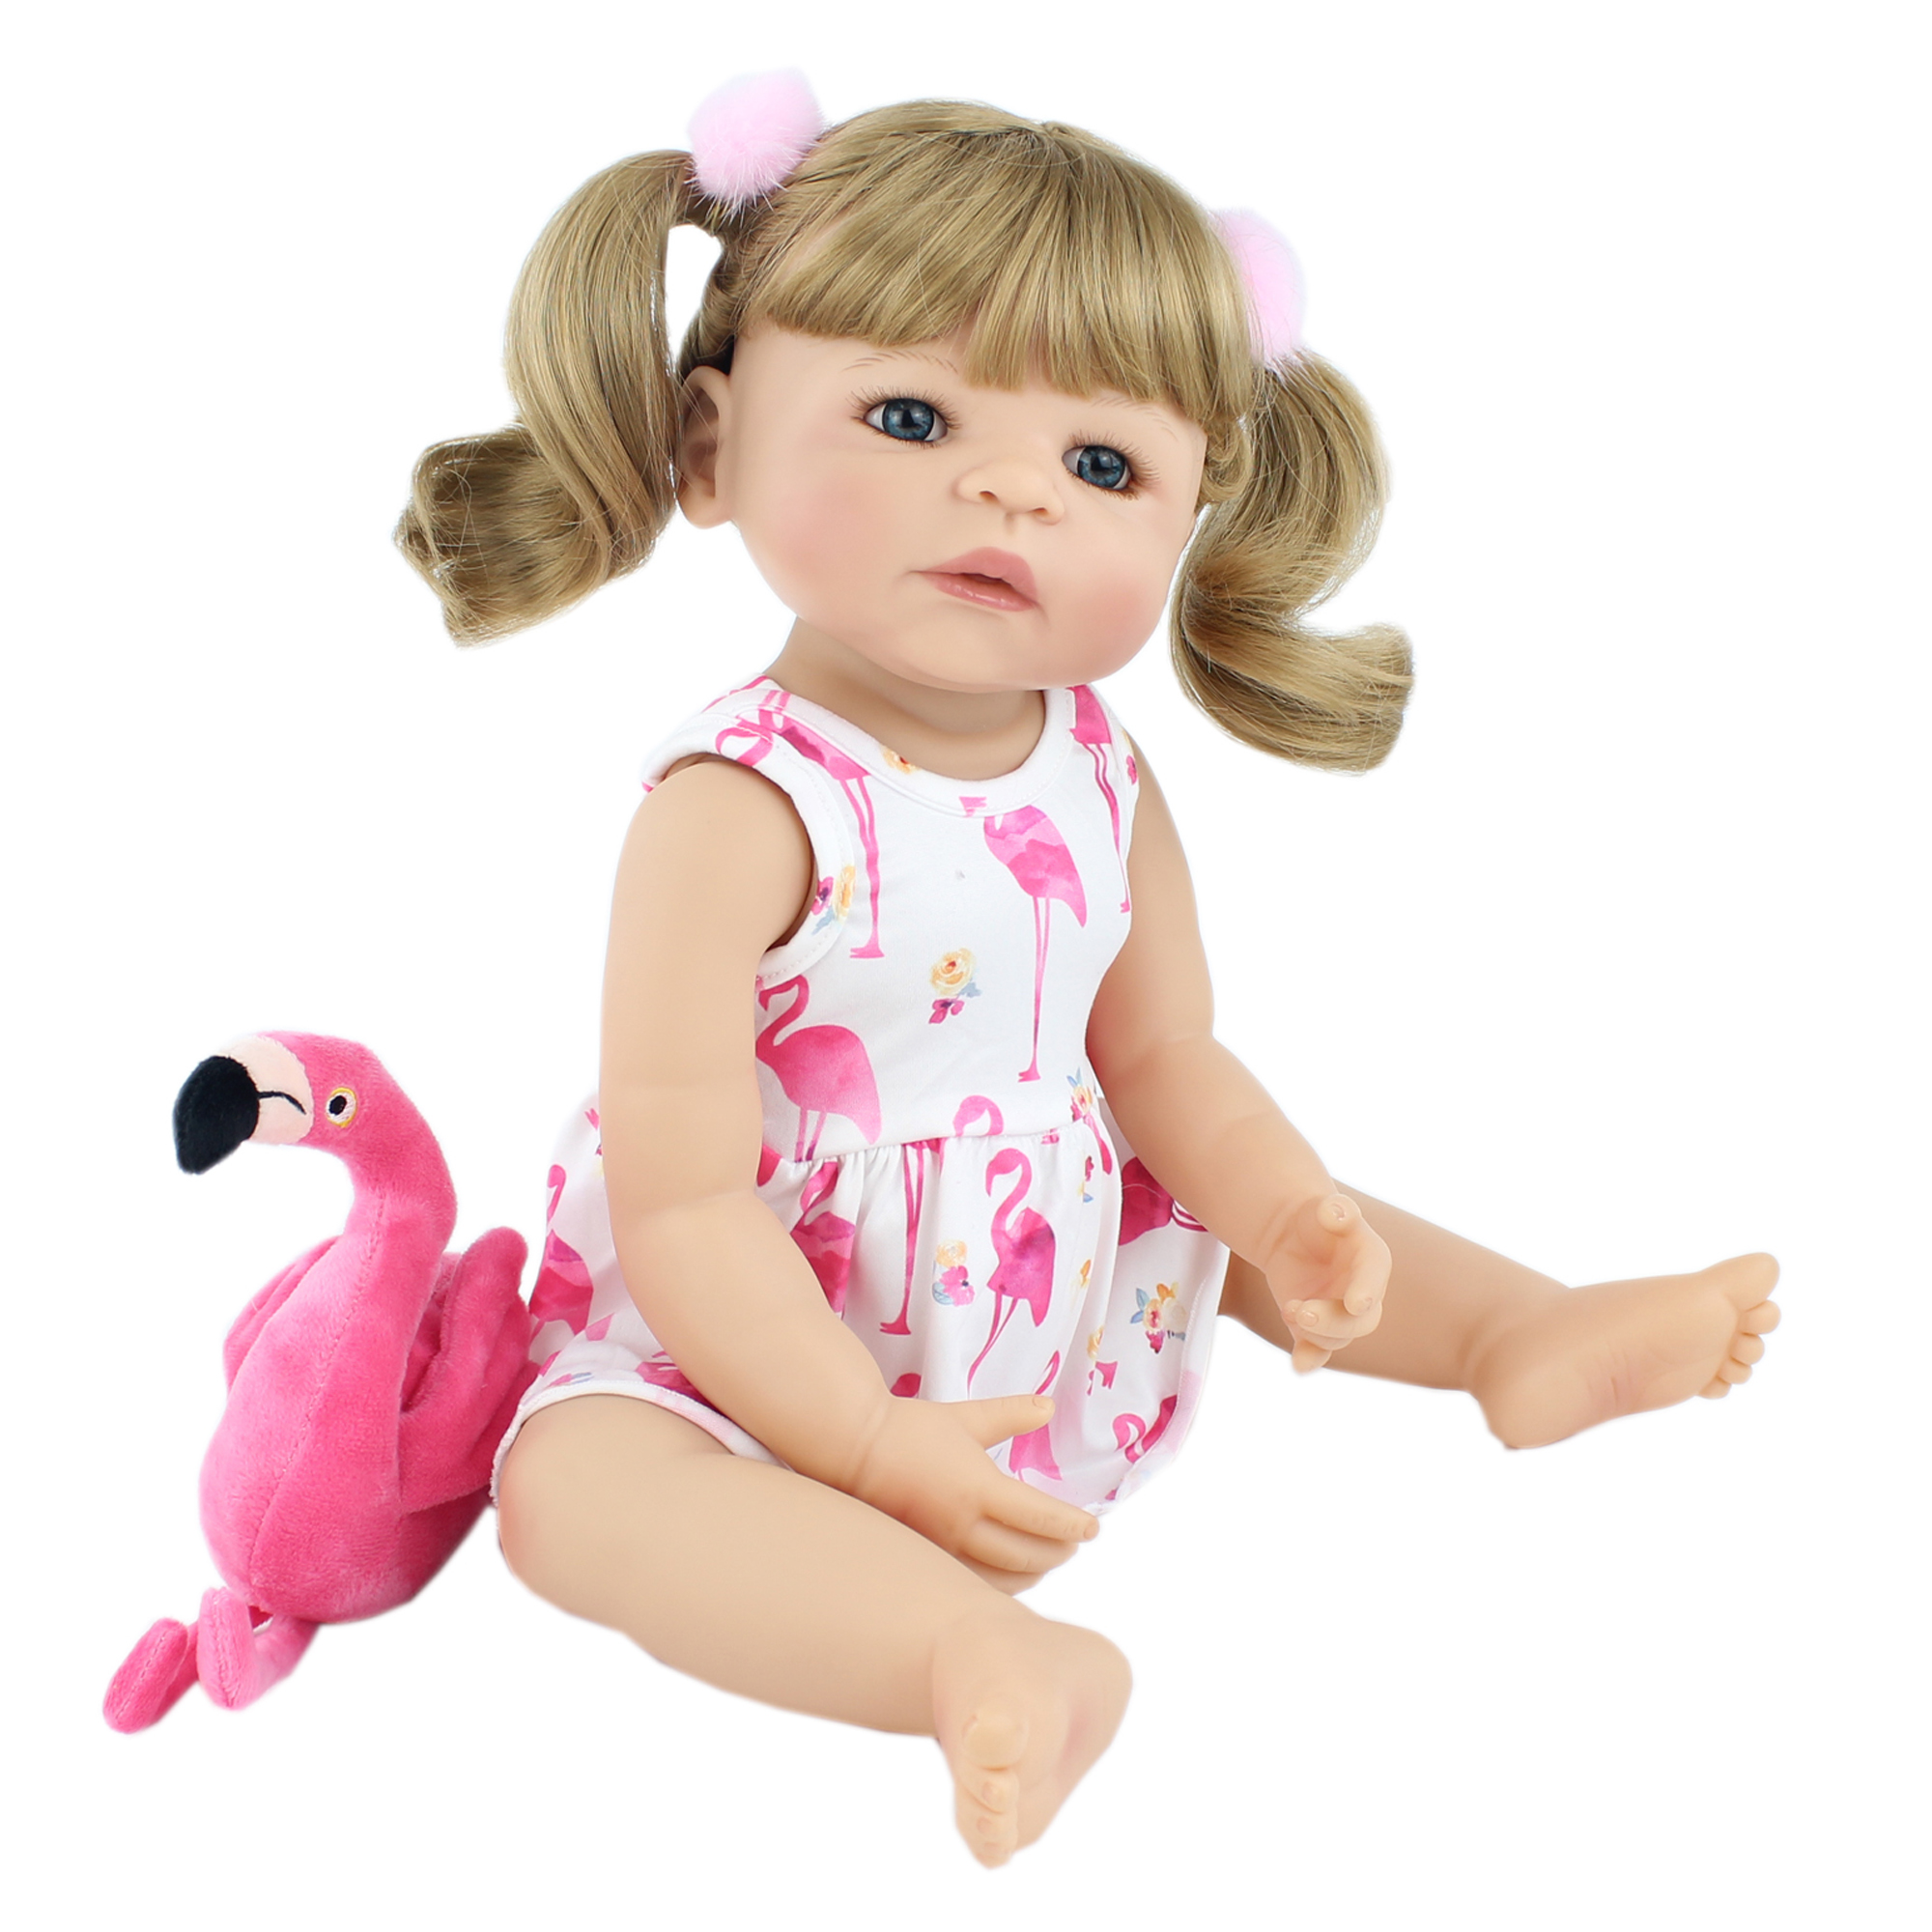 55cm Full Silicone Reborn Baby Doll Toy For Girl Blonde <font><b>Princess</b></font> <font><b>Toddler</b></font> Alive Babies Realistic Classic Boneca Play House Toy image